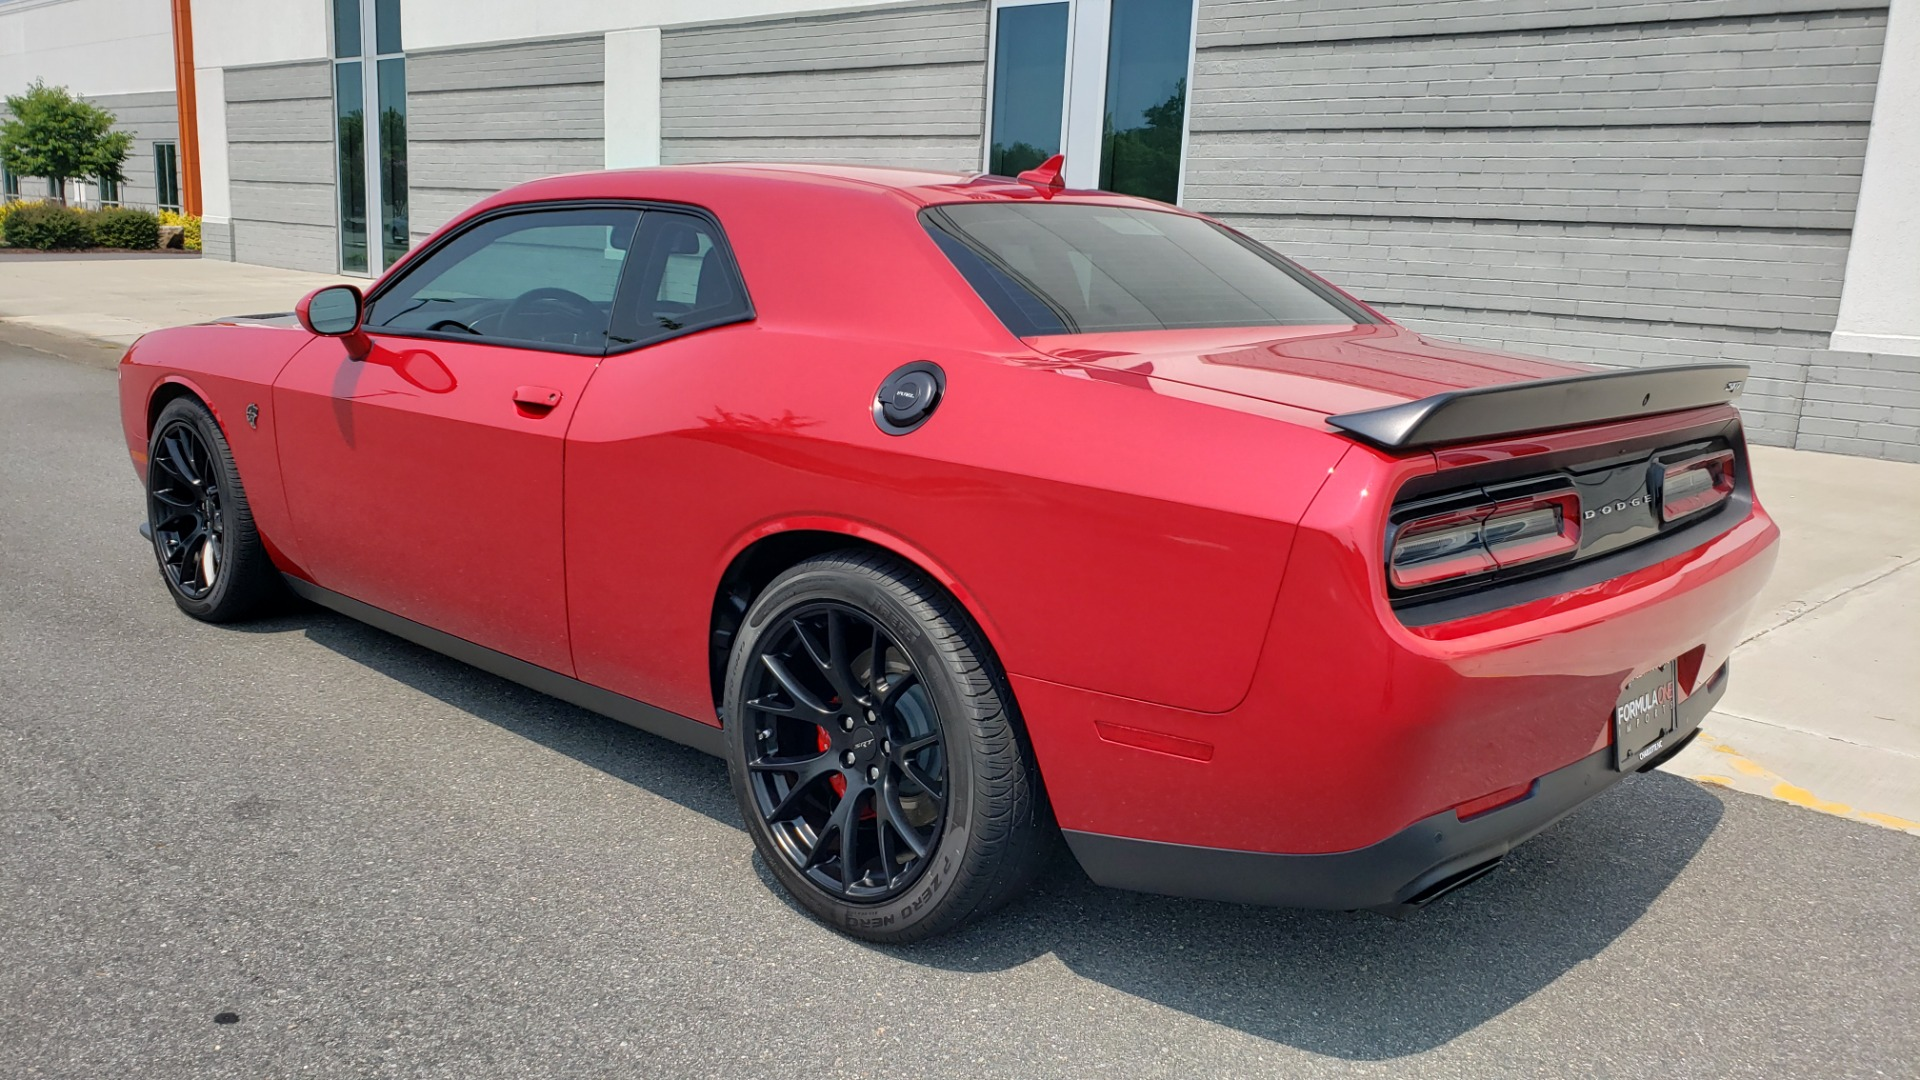 Used 2016 Dodge CHALLENGER SRT HELLCAT 707HP COUPE / AUTO / NAV / SUNROOF / H/K SND / REARVIEW for sale $60,995 at Formula Imports in Charlotte NC 28227 6